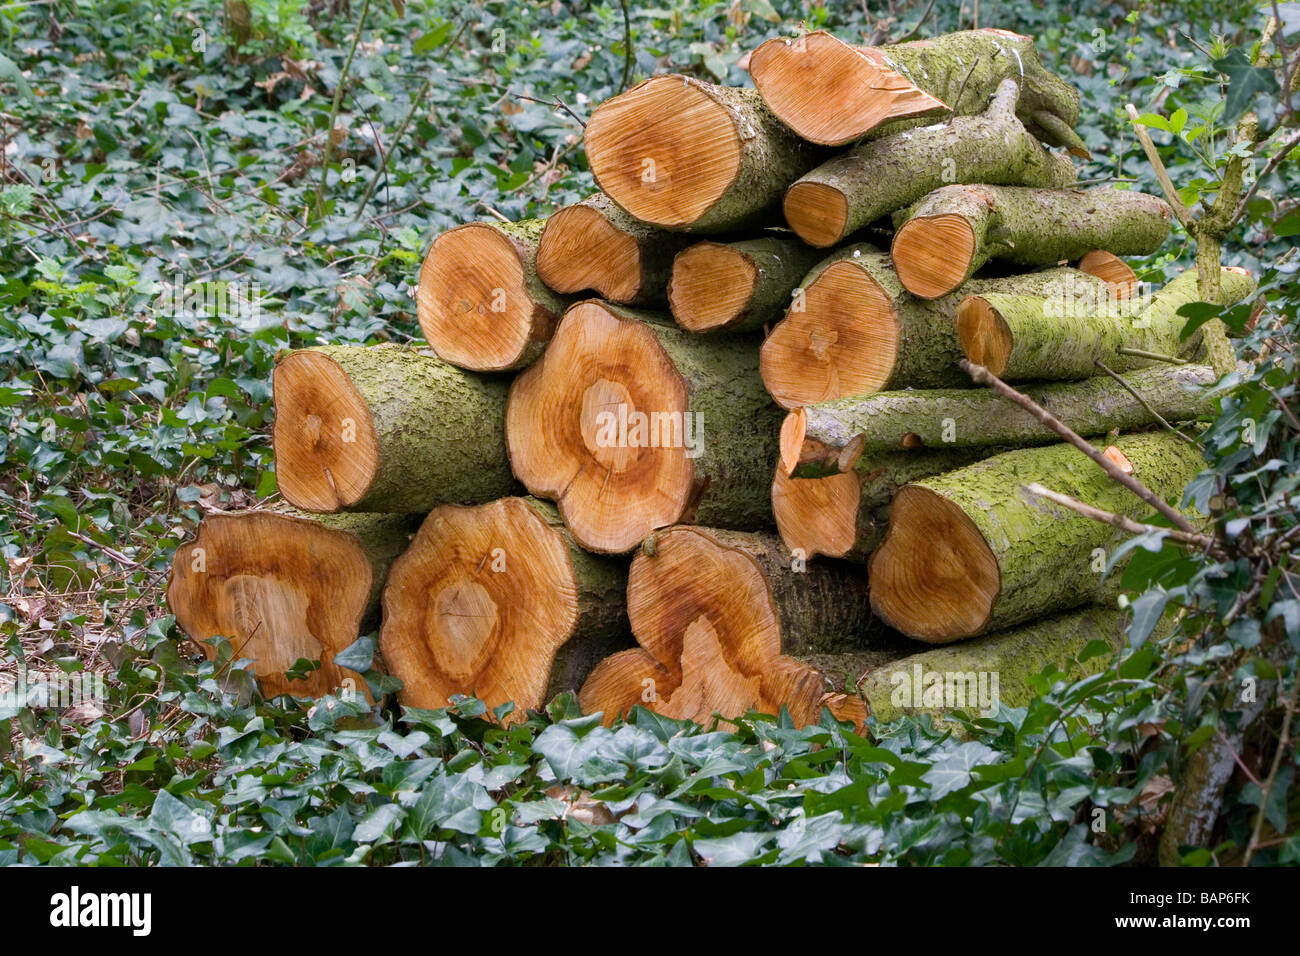 Log Pile Left On Forest Floor To Provide Shelter For Small Animals And  Enrich The Soil